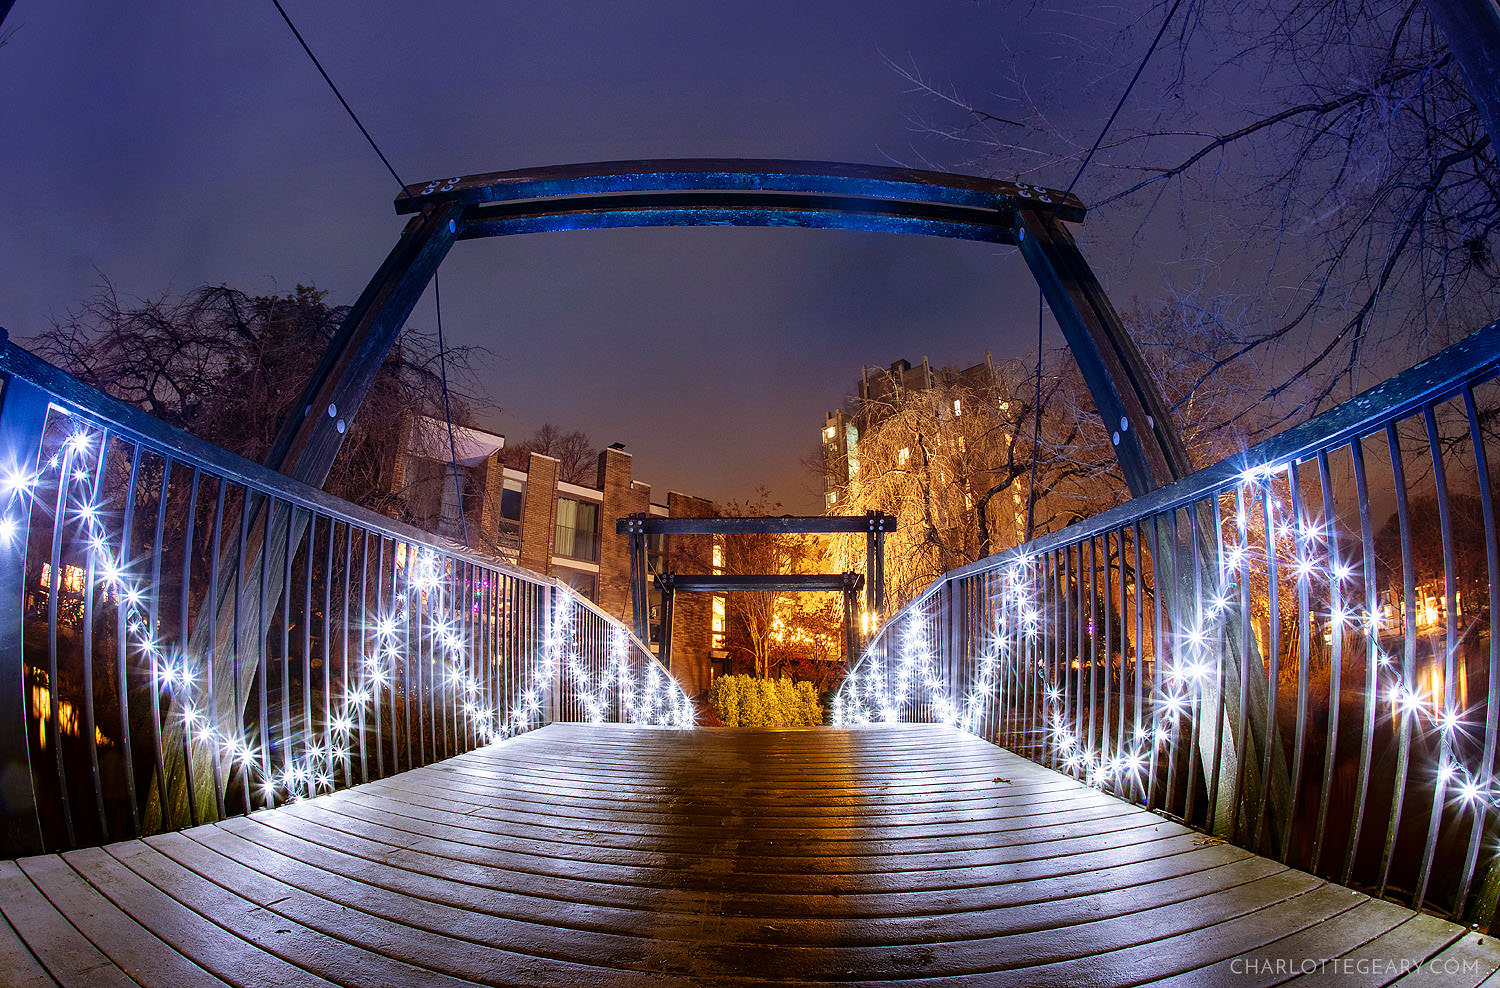 The Christmas lights at the Van Gogh Bridge at Lake Anne (Reston, Virginia)